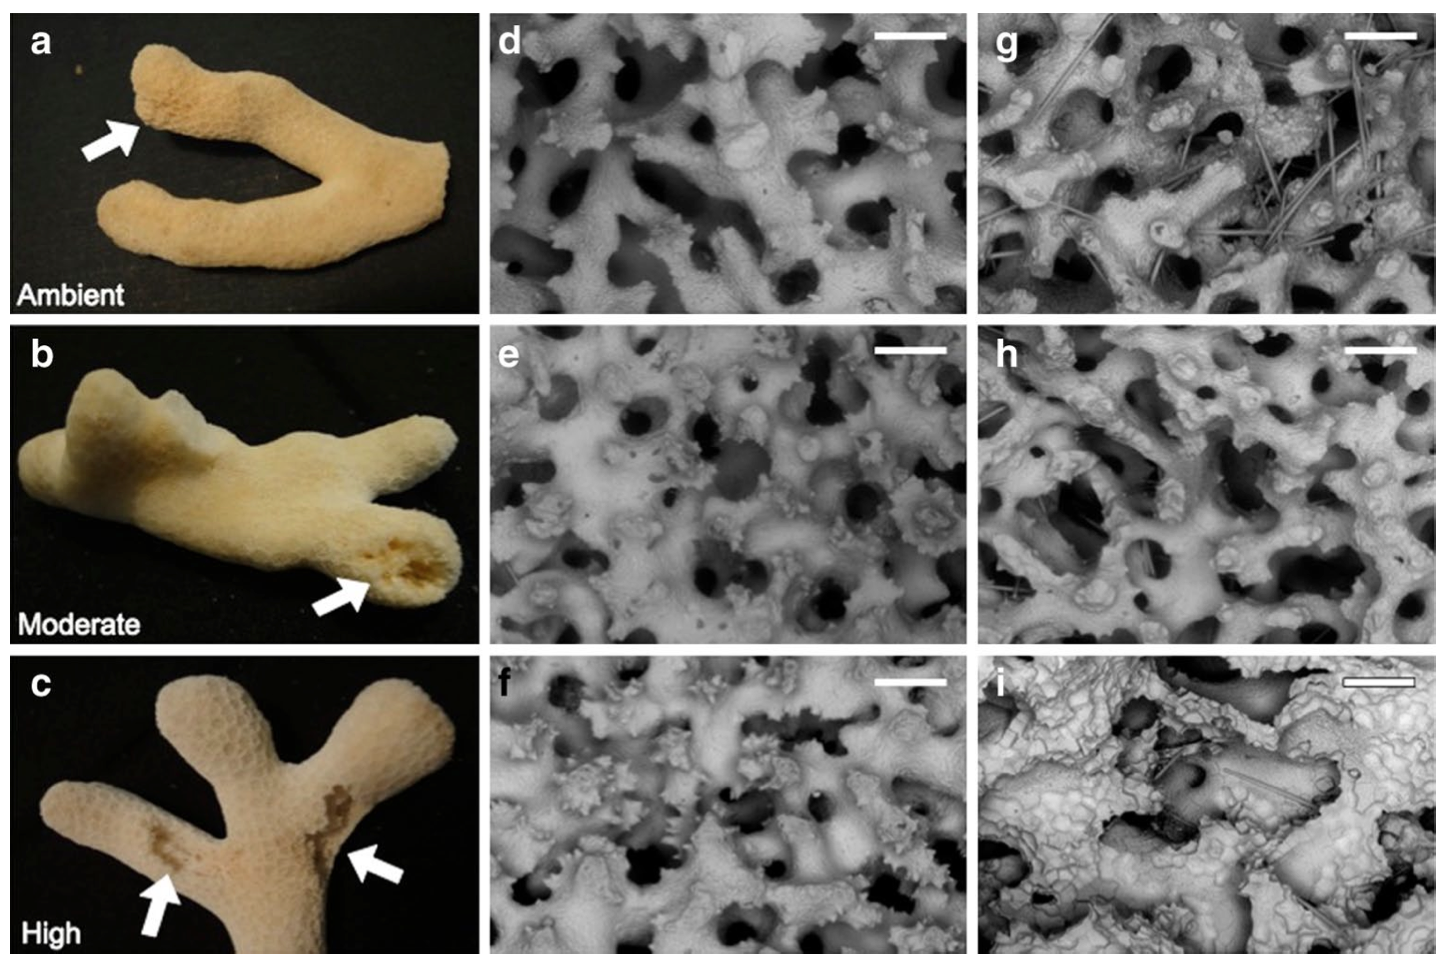 Macro- and SeM images of Porites furcata specimens from ambient, moderate and high pCO2 treatments. a, b, c P. furcata fragment used in subsequent SeM imaging from each of the three pCO2 treatment levels; arrows indicate regions of Cliona varians attachment and erosion. SeM images (d, e, f) are of P. furcata skel- etal regions that were free of C. varians infestation throughout the entirety of the experiment. g, h, i SeM images of C. varians attach- ment sites and sponge erosional scars on P. furcata from each pCO2 level, as previously indicated by arrows in a, b, c (sponge removed for imaging purpose). Scale bars from all SeM images d, e, f, g, h, i) are 250 μm